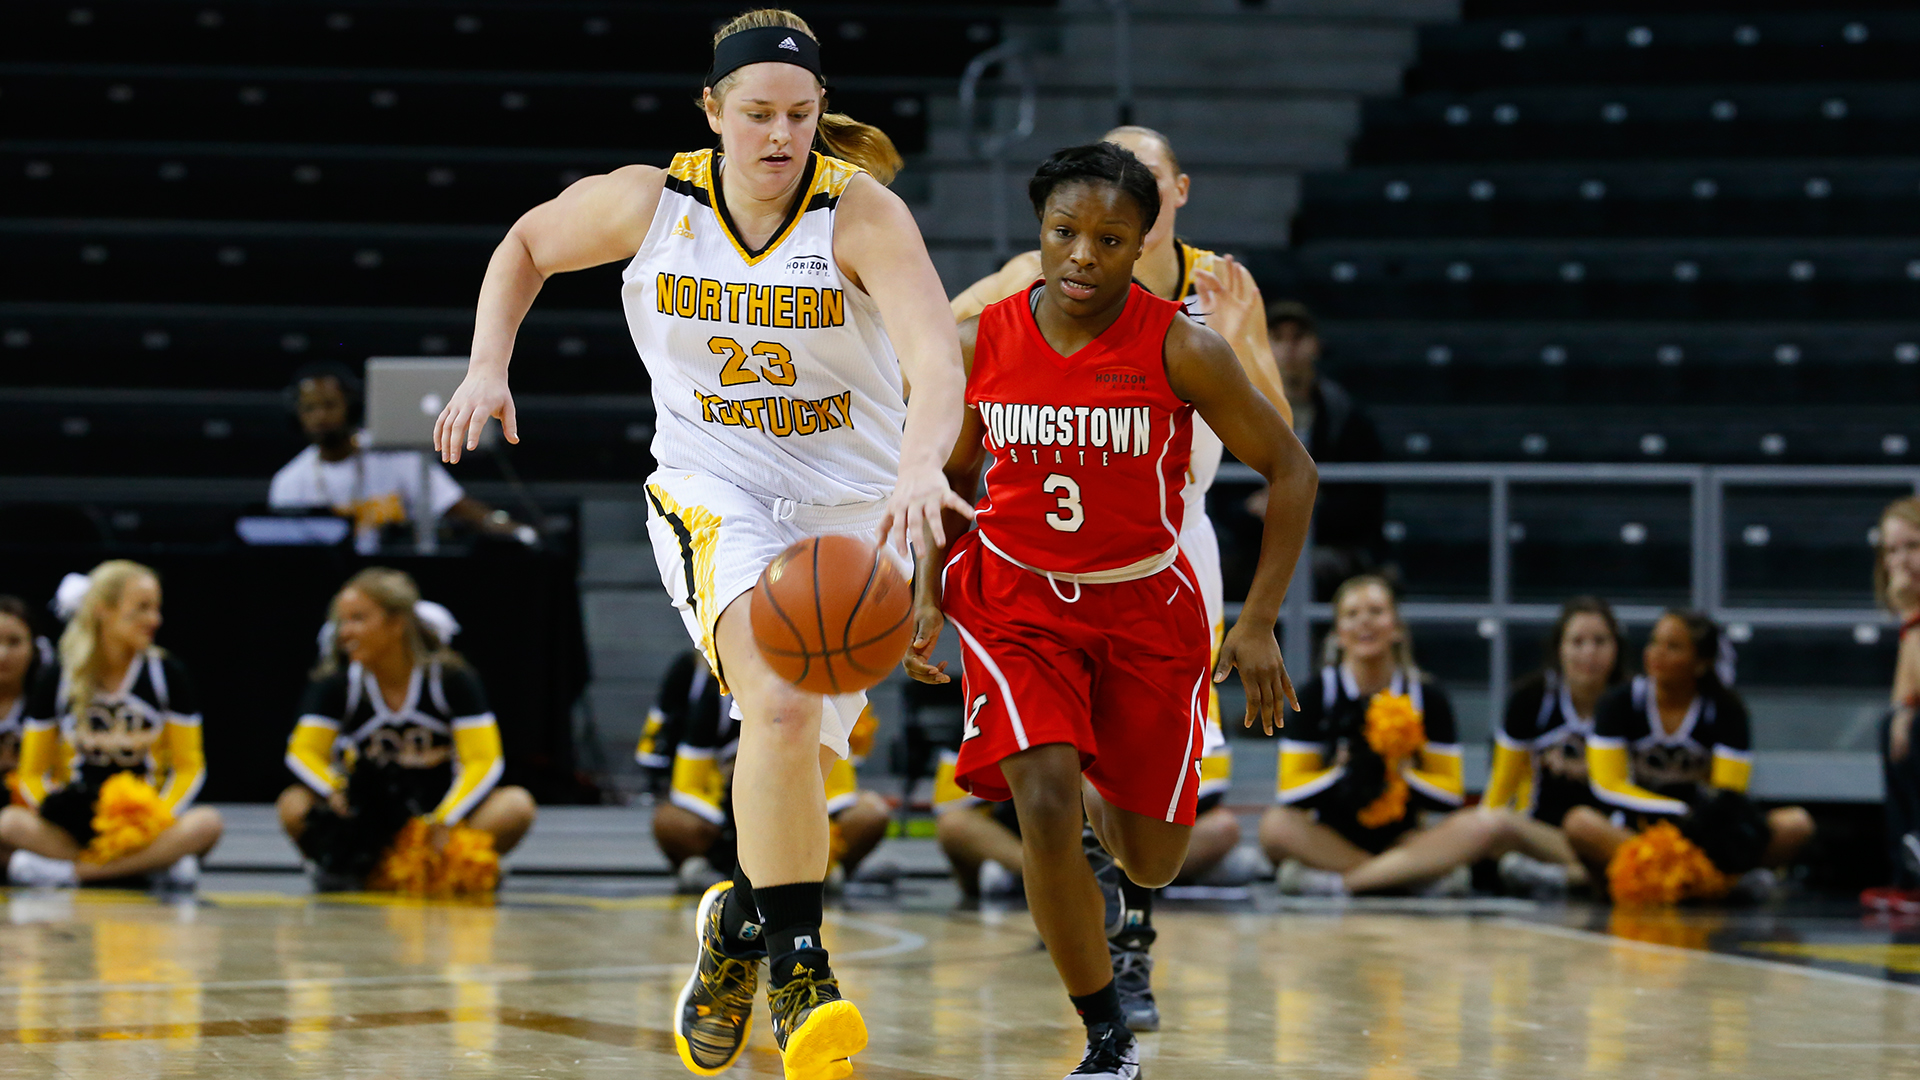 @NKUNorseWBB earns first League win with overtime victory over YSU - NKU Athletics